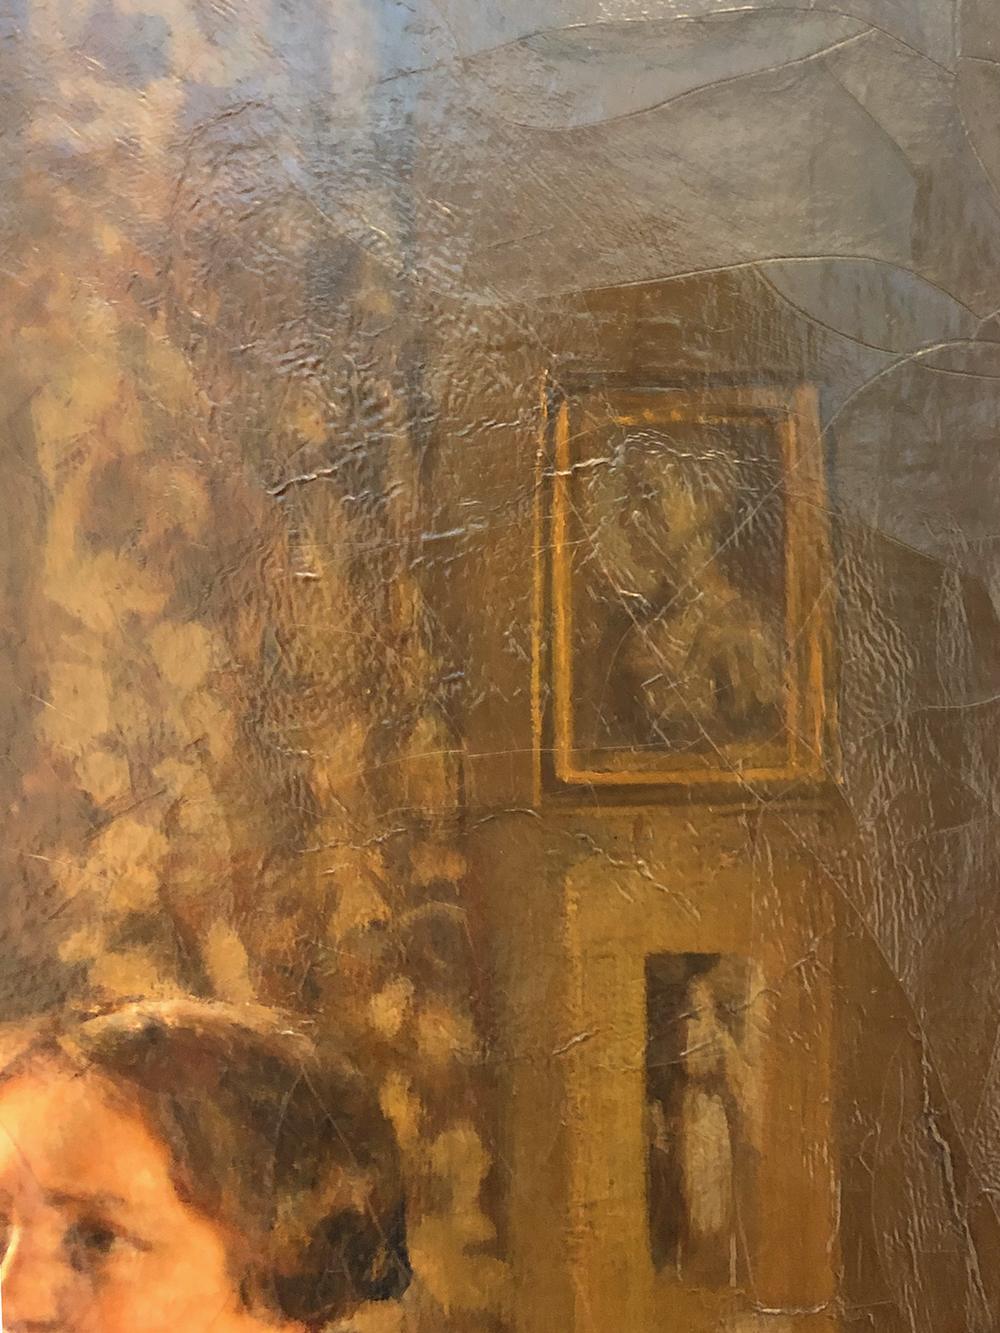 The upper right-hand corner of The Tea Party features a portrait of a young woman's profile. University of Pennsylvania, Kislak Center for Special Collections, Rare Books, and Manuscripts.